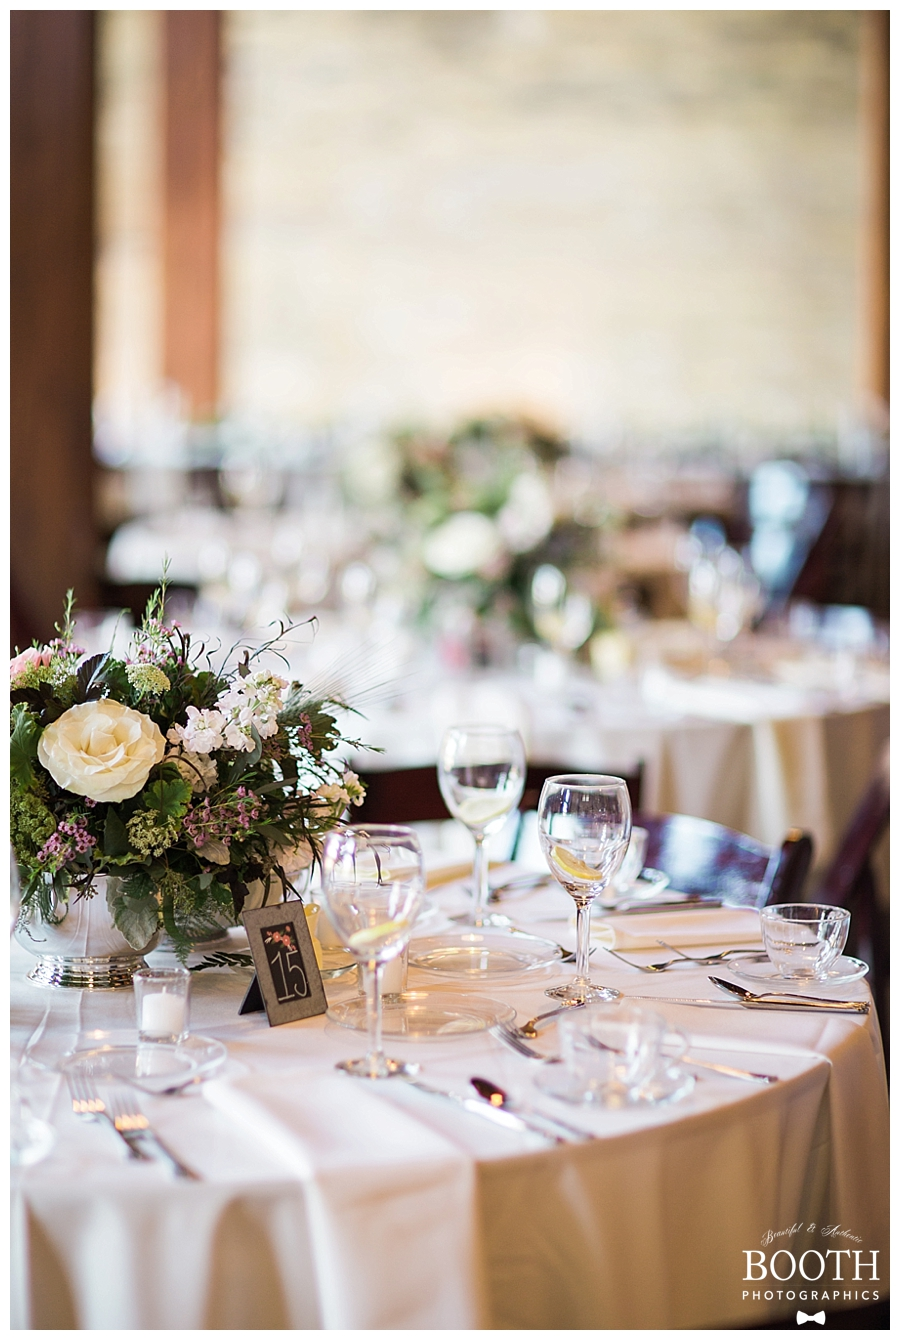 tablescapes at a romantic, industrial wedding at the Pritzlaff Events